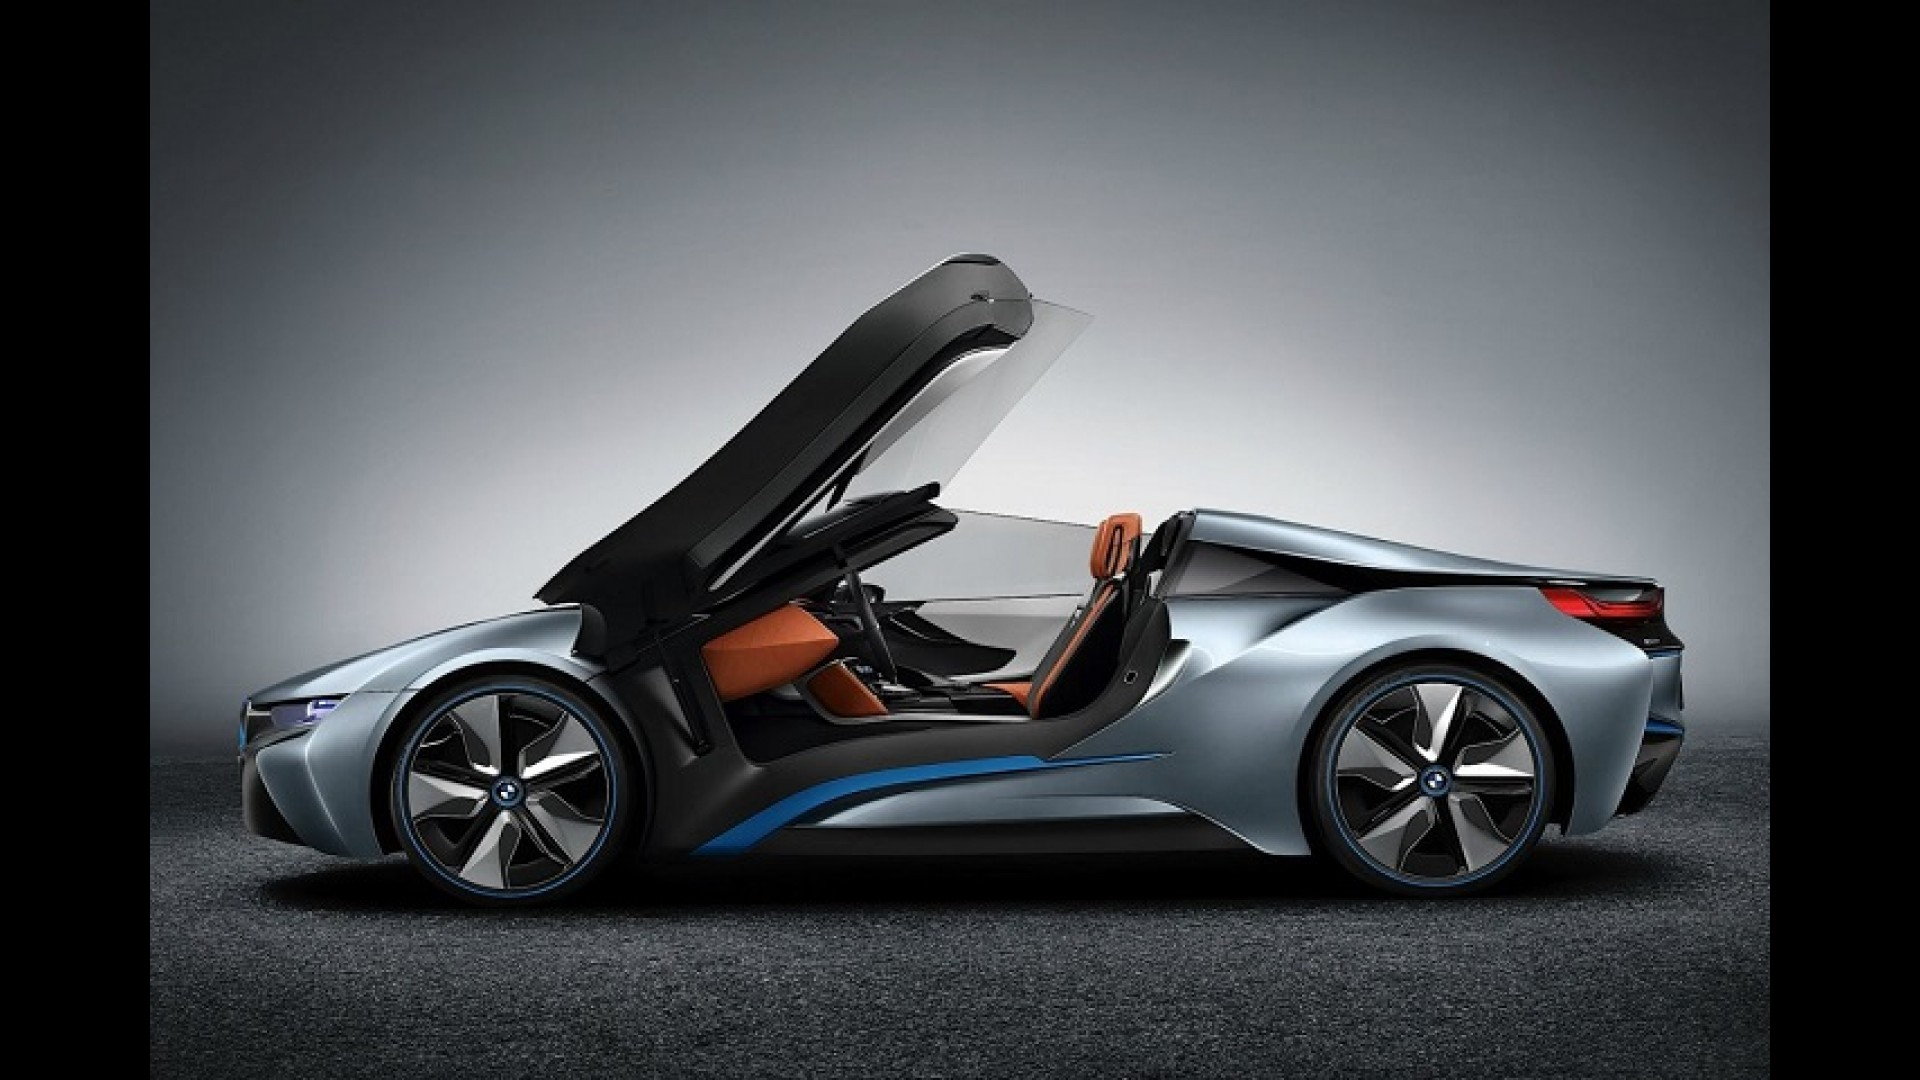 Could the Next-Generation BMW i8 Get 750HP?